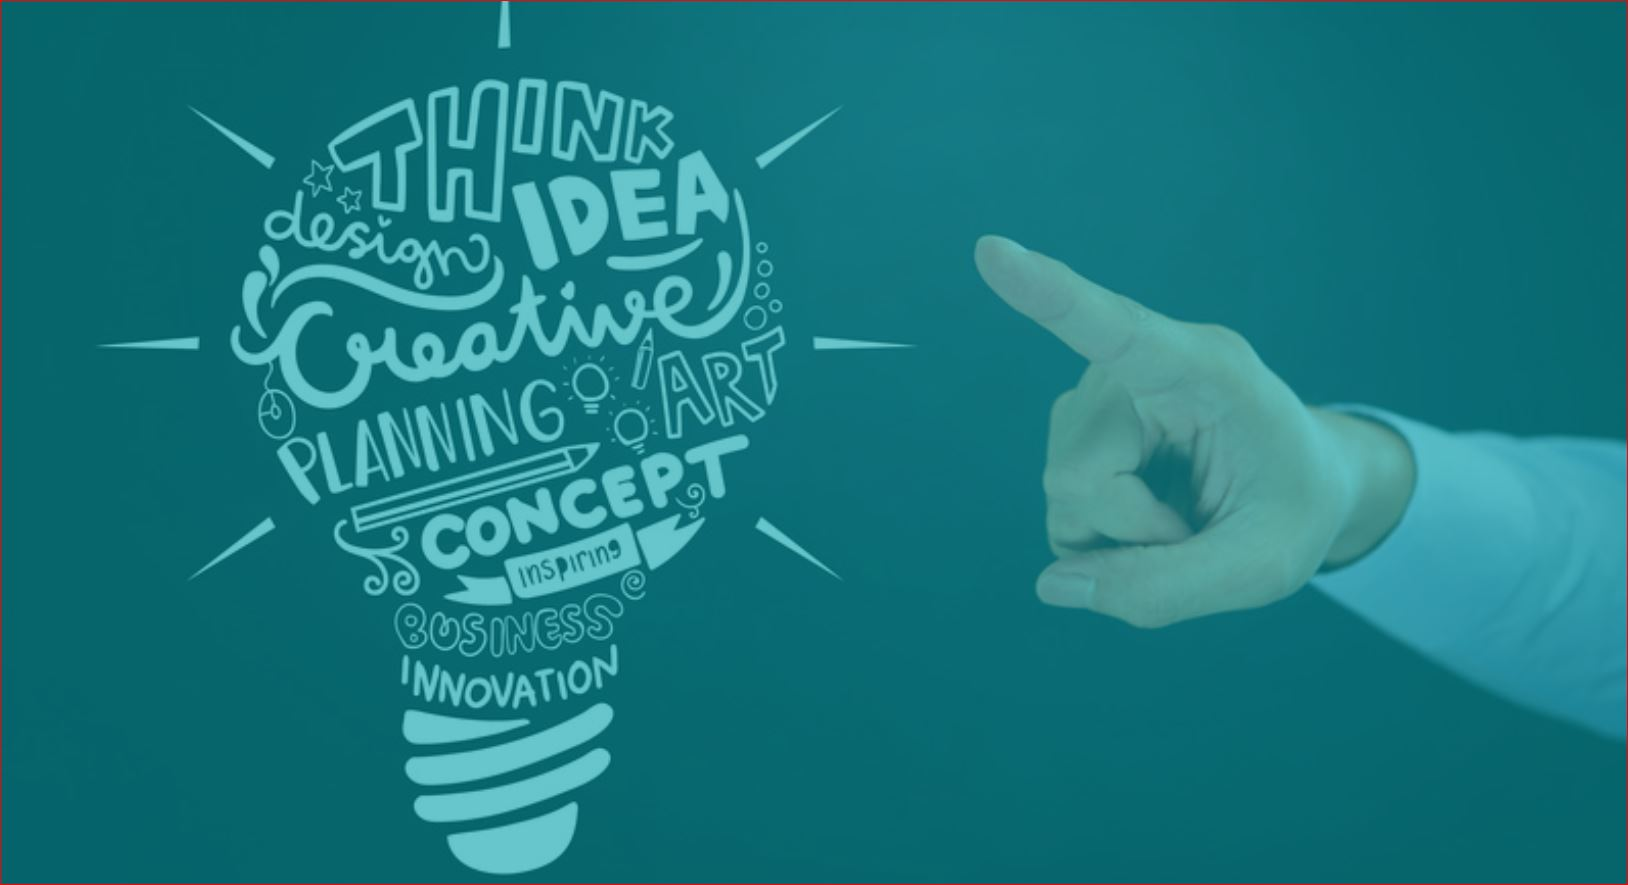 A new mindset for the digital world - increase performance through creativity and innovation